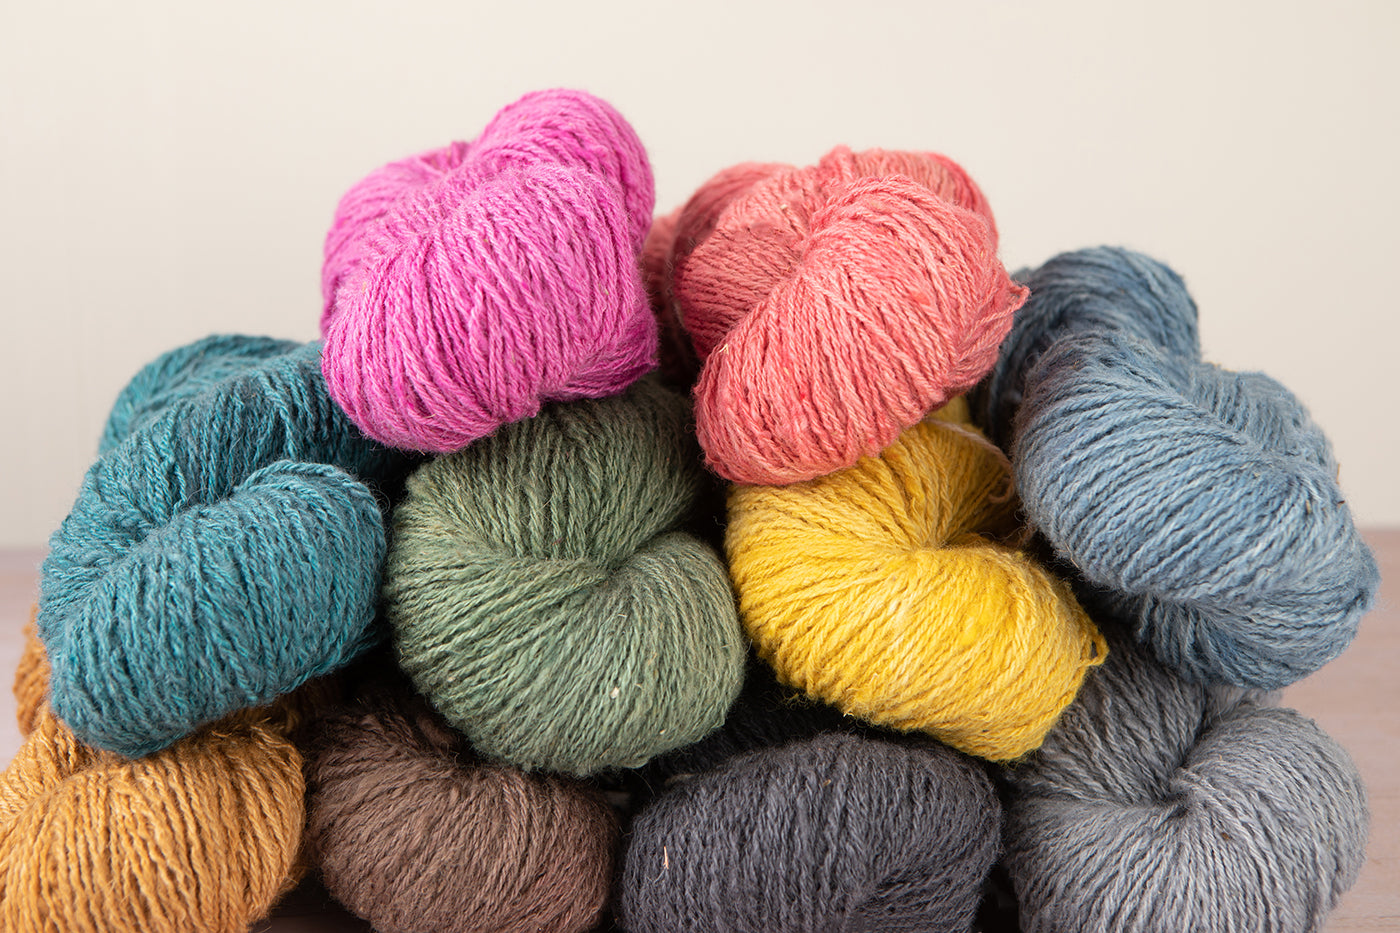 This is an image of several colorful skeins of yarn stacked up on a table.